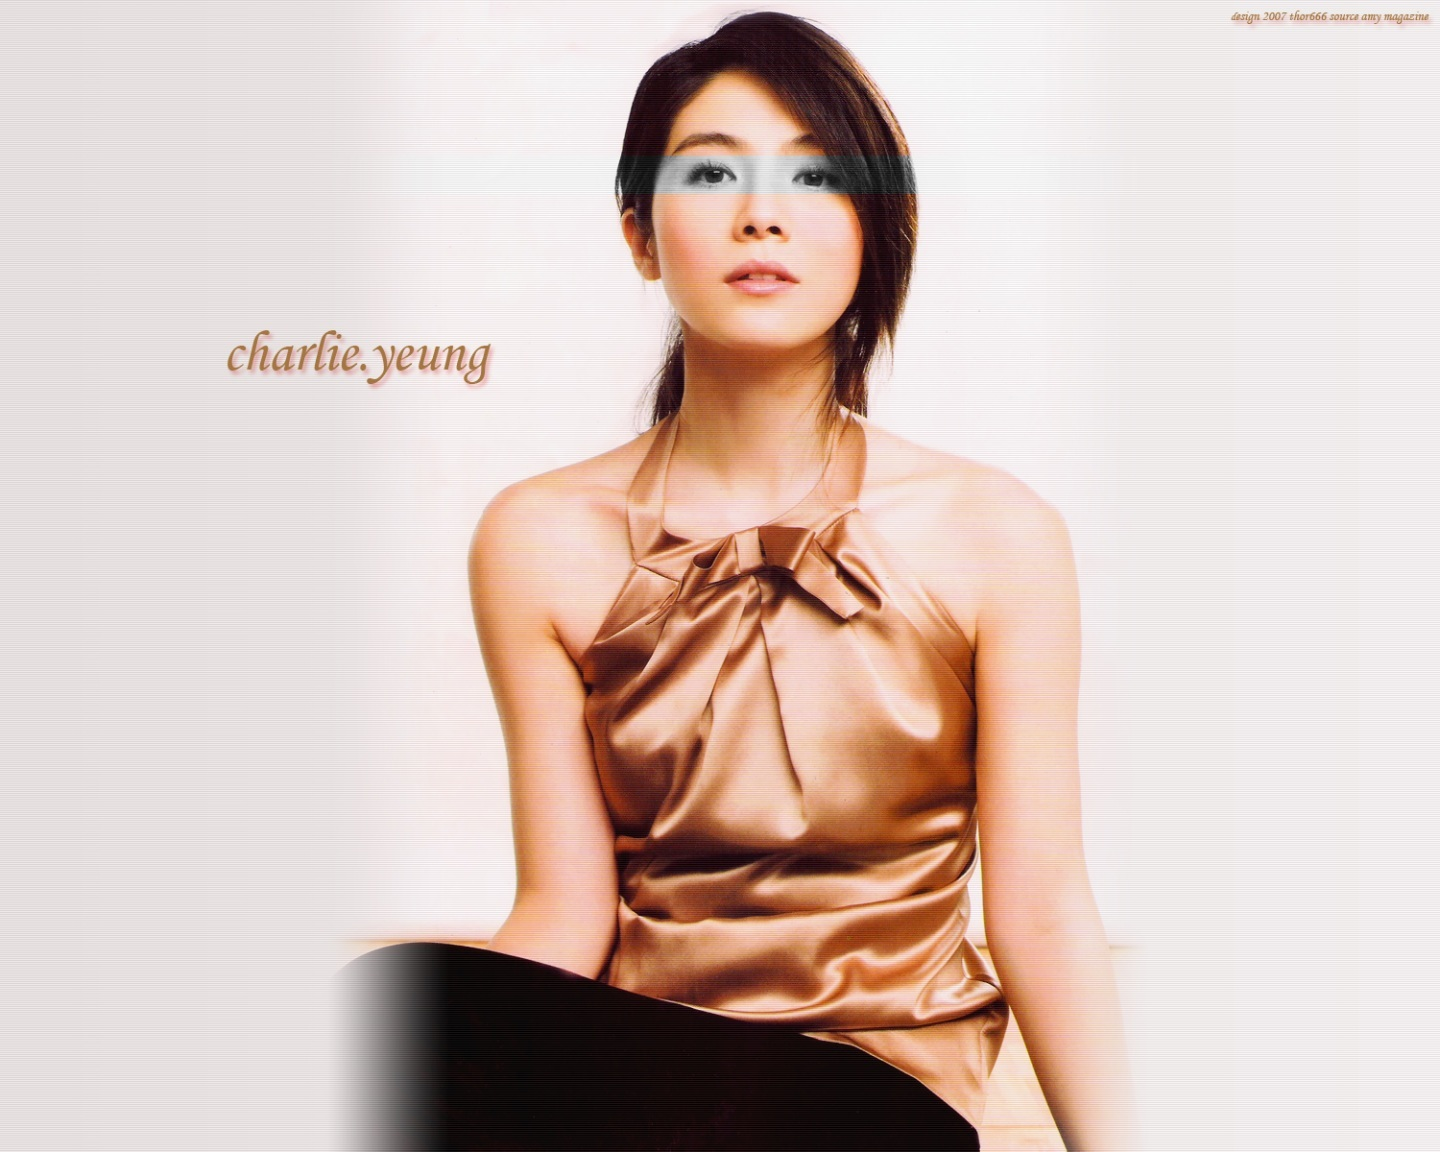 Charlie Young / 杨采妮